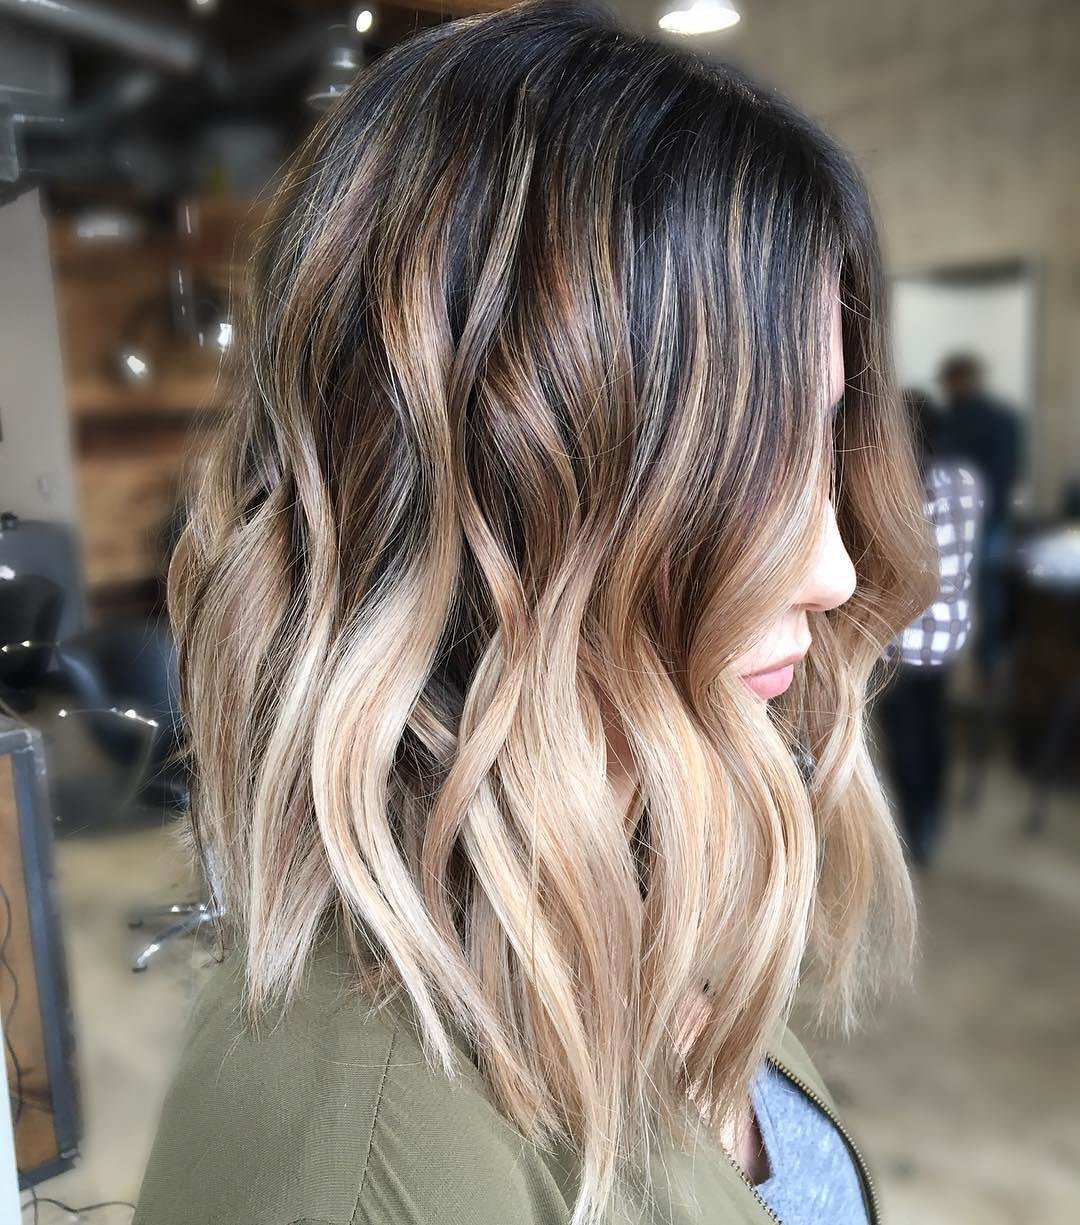 The Best 10 Balayage Ombre Hair Styles For Shoulder Length Hair Pictures